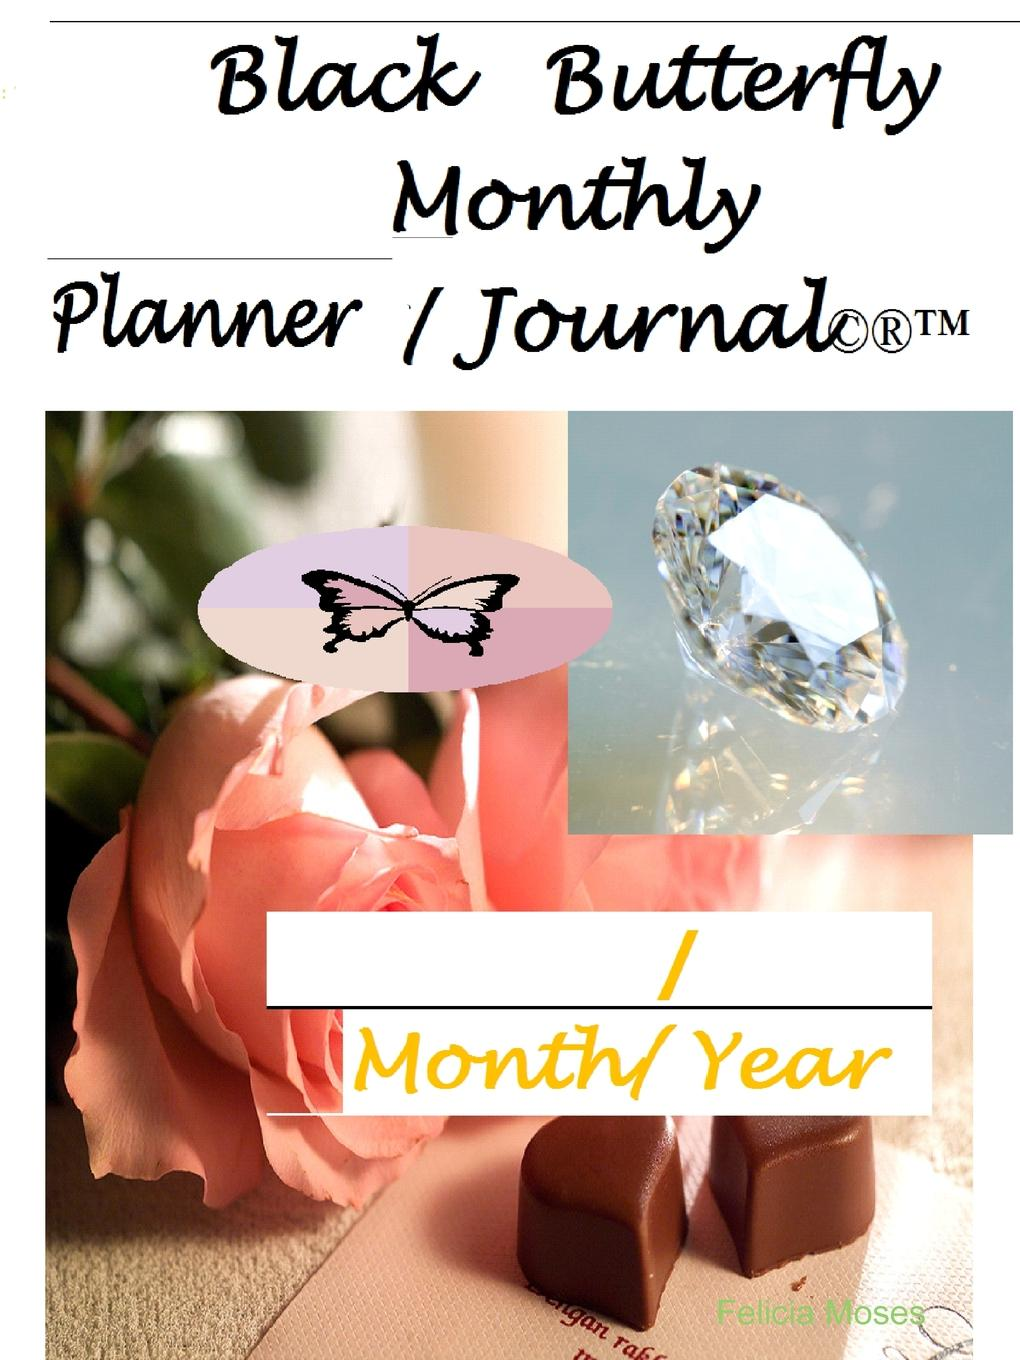 Felicia Moses Black Butterfly Monthly Planner Journal 2018 successful teacher workbook this half year edition notepad planner effective time management manual b5